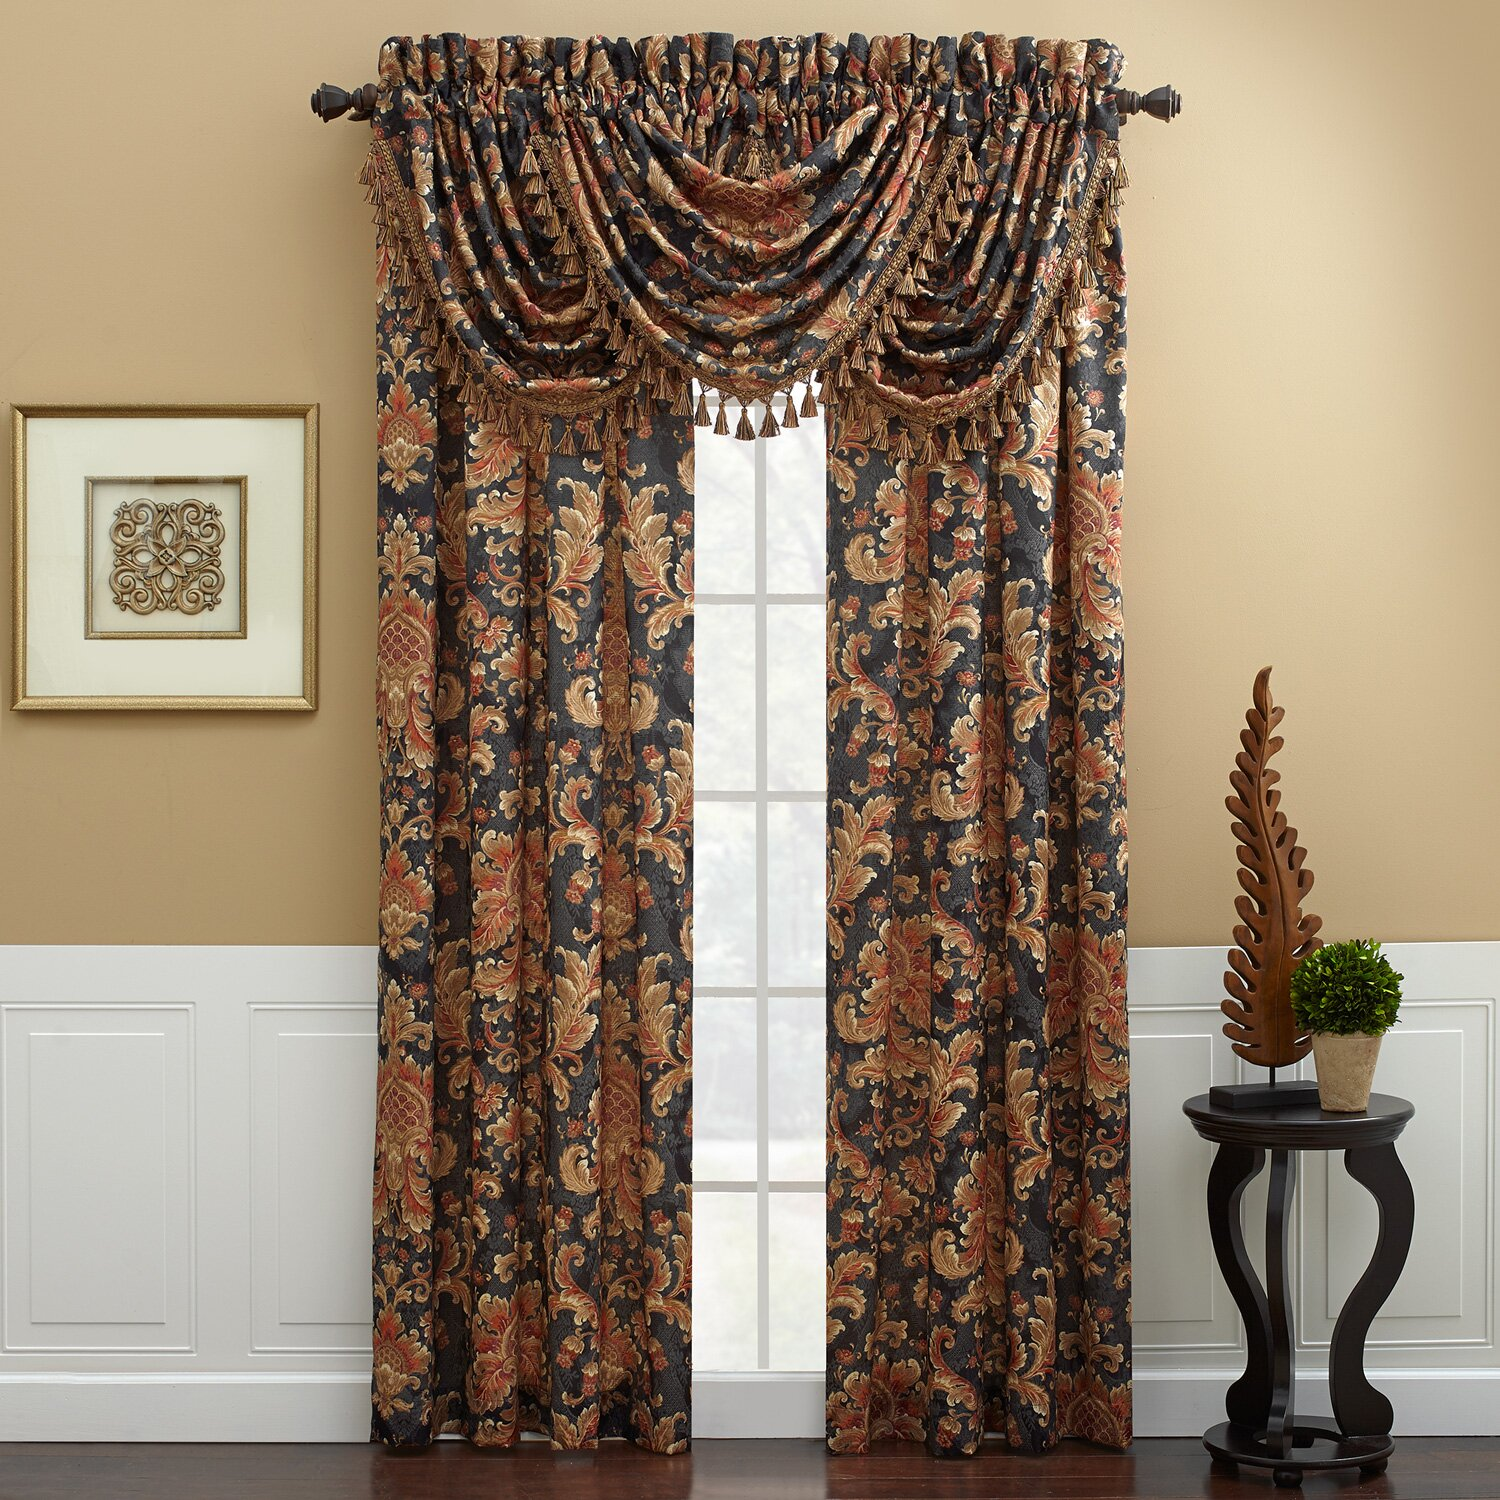 "Serafina Waterfall Swag 48"" Curtain Valance"